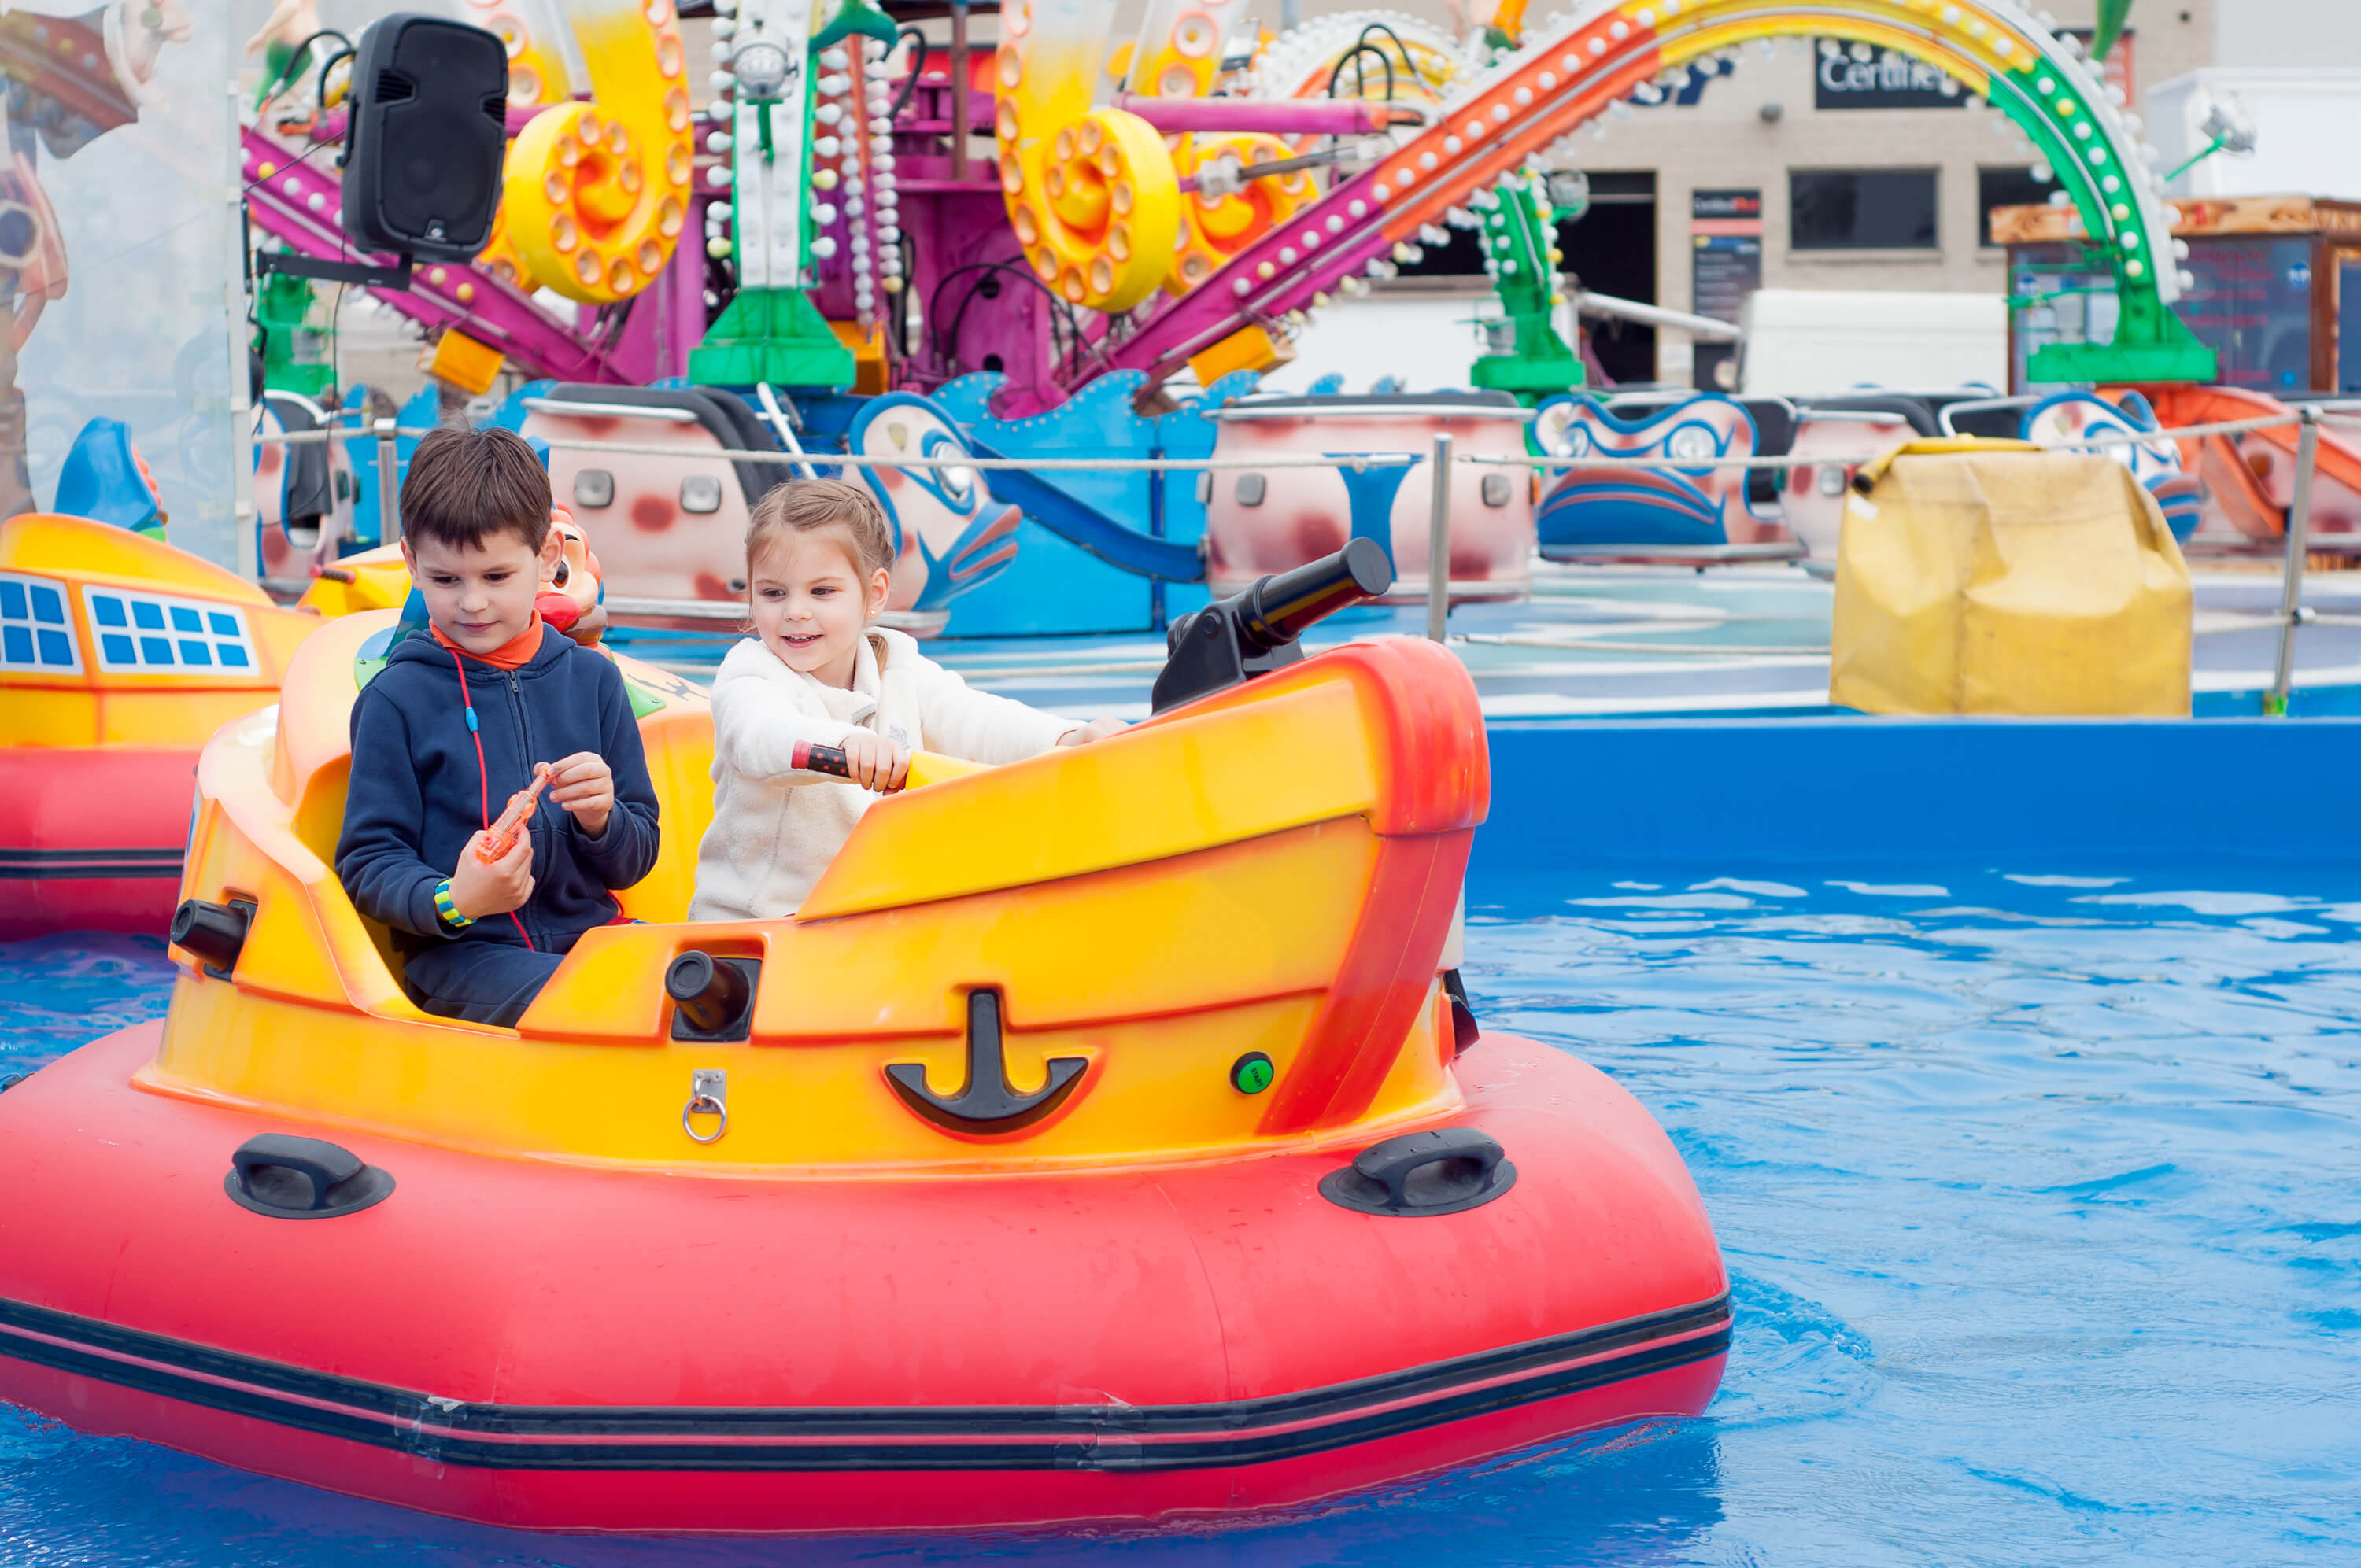 Beautiful Children Having Fun At An Amusement Park. Children On The Ship.